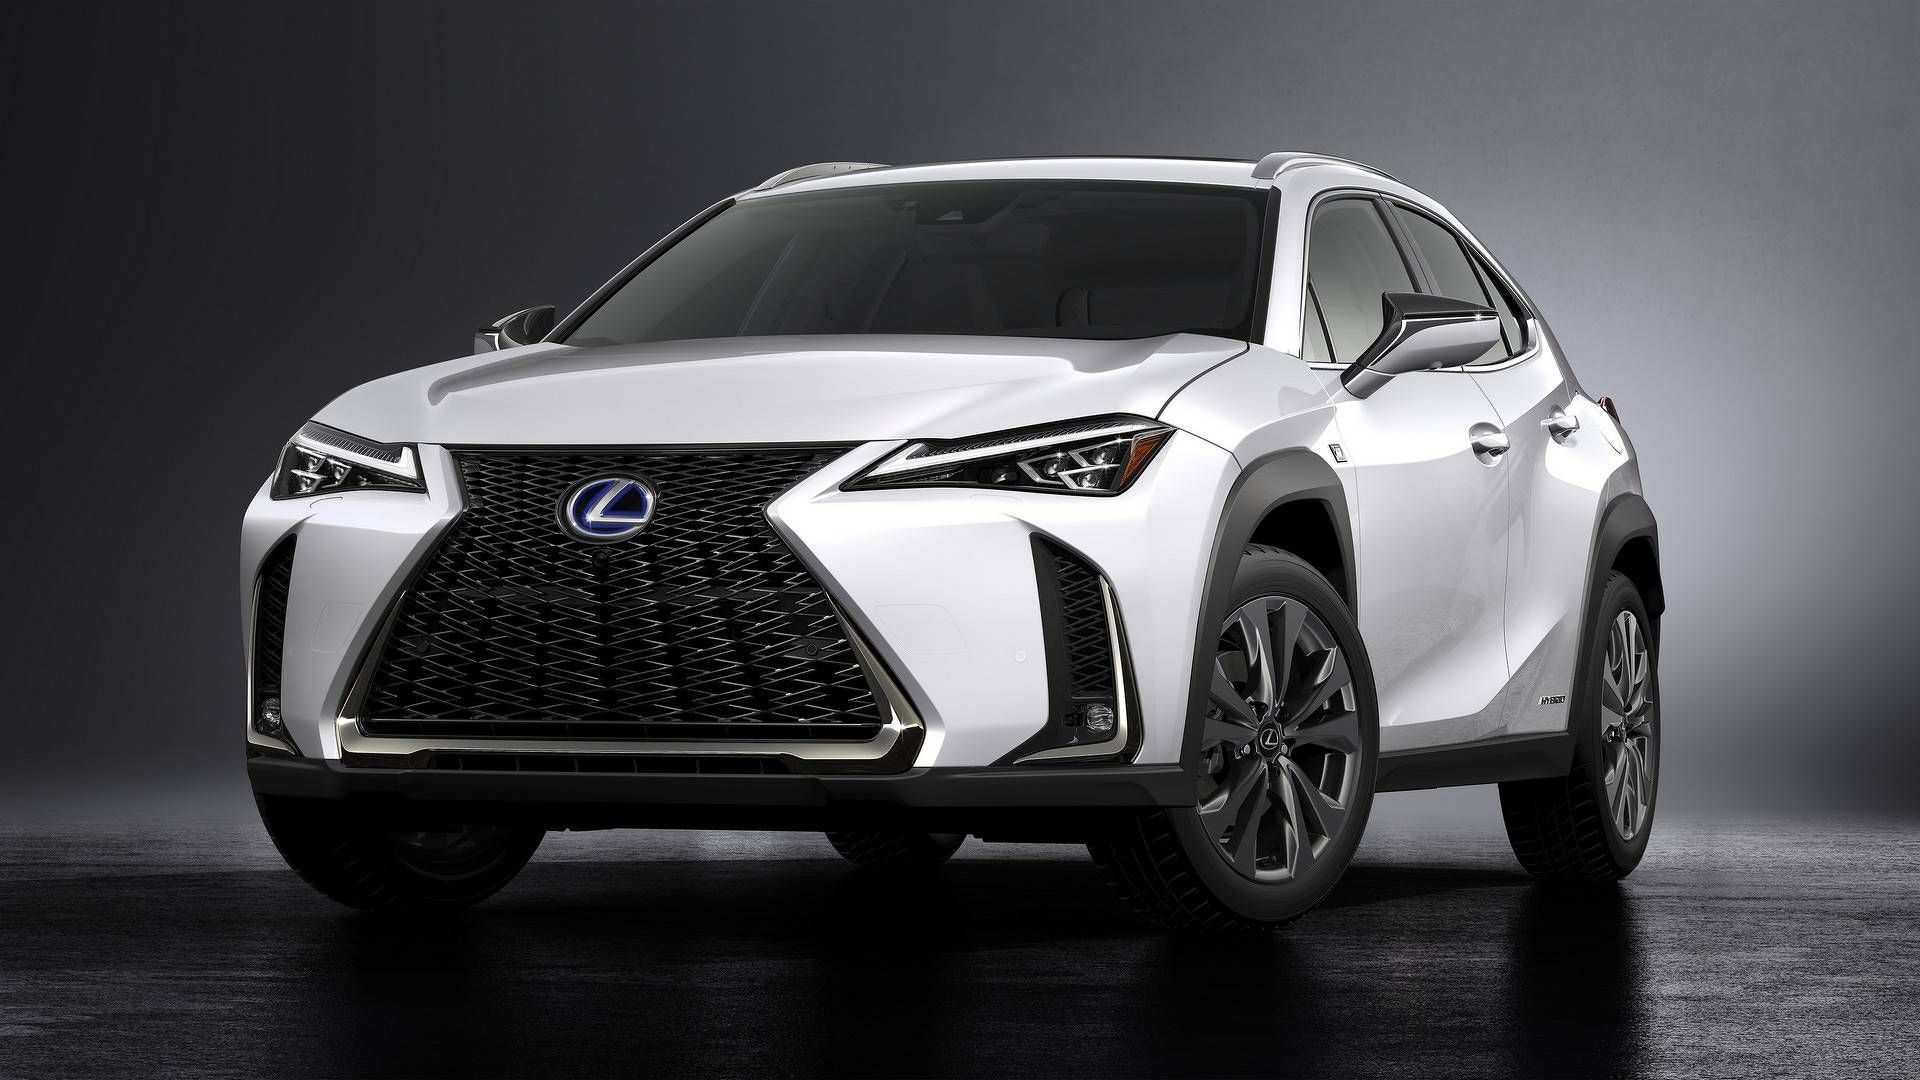 98 All New Lexus Models For 2019 Review And Release Date